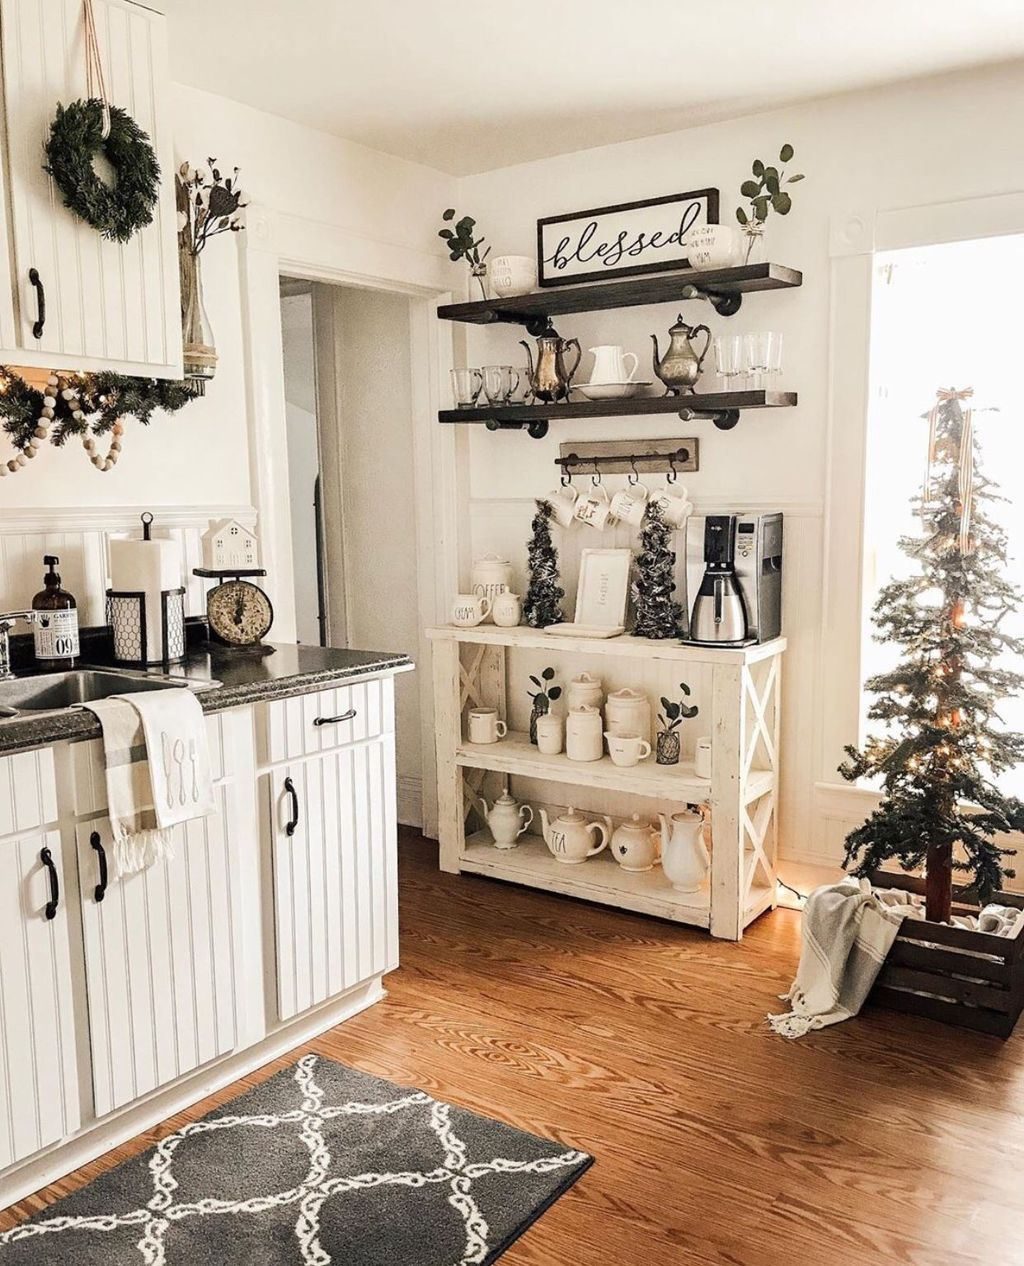 Inspiring Winter Kitchen Decor Ideas You Can Try 44